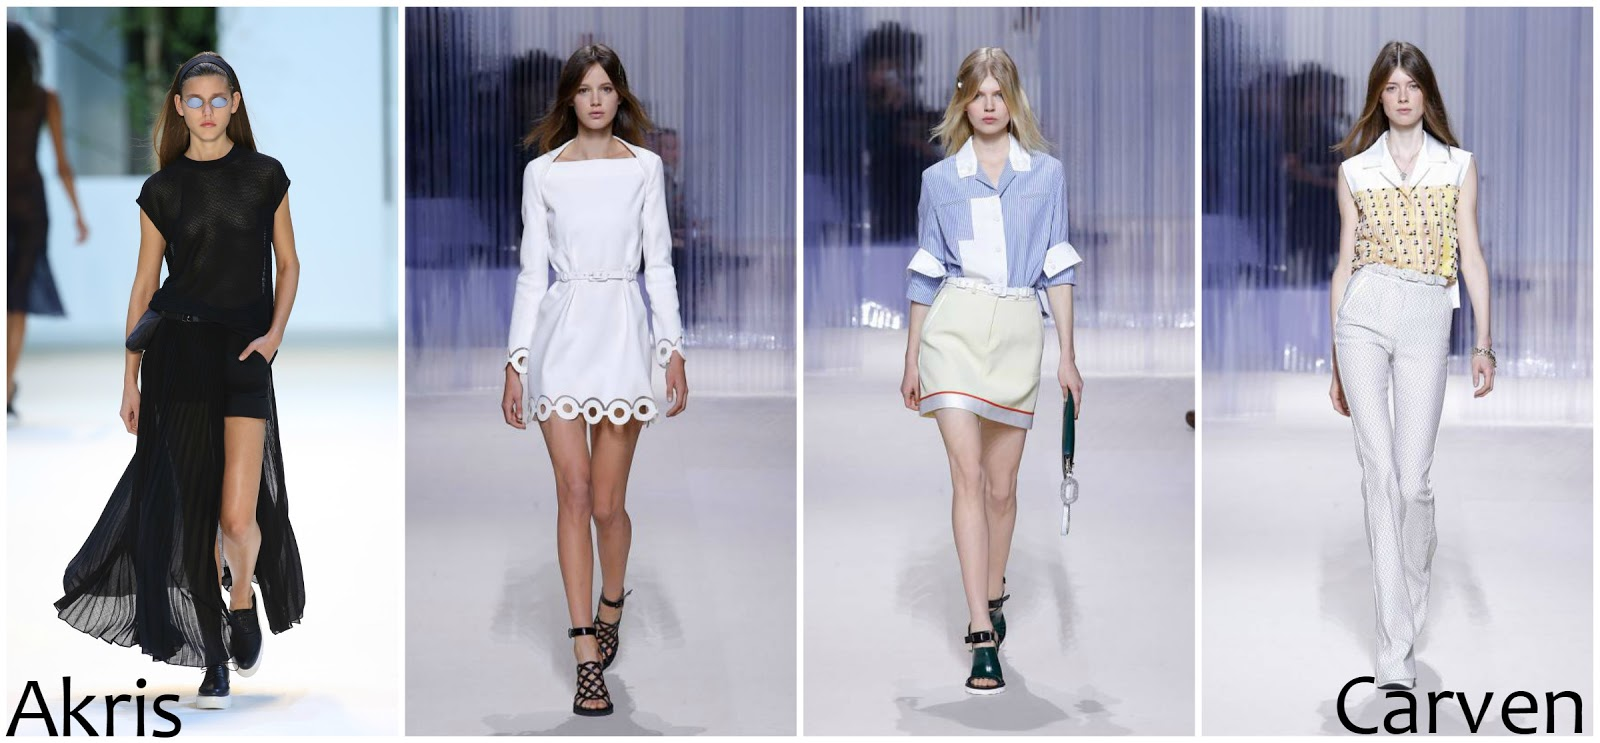 Akris Carven runway fashion